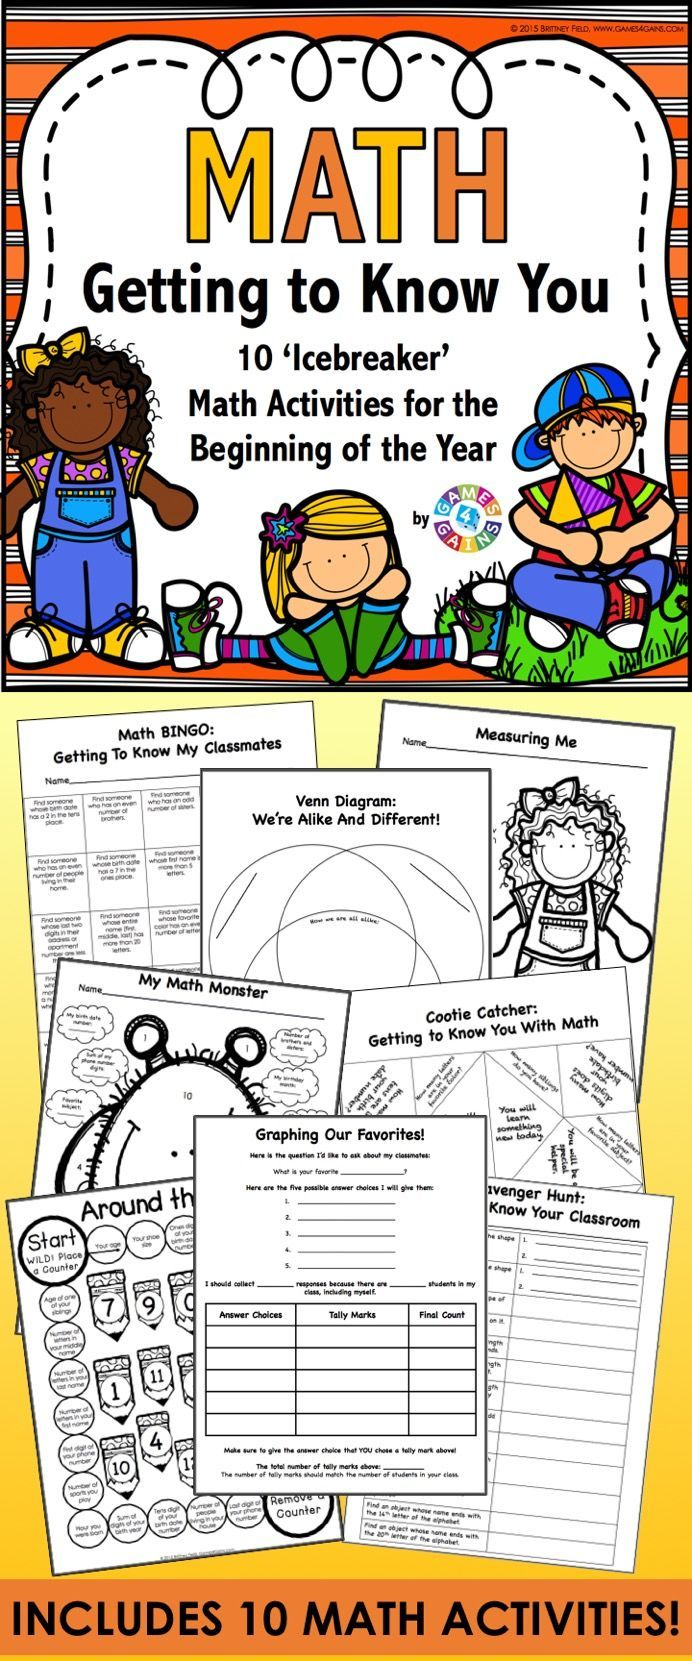 All About Me Math provides a great opportunity for students to use basic math concepts as they get to know one another at the beginning of the year. This All About Me packet comes with 10 fun and engaging math activities and games (plus a bonus math terms word search). This packet is perfect for starting off the year with 2nd-4th graders.